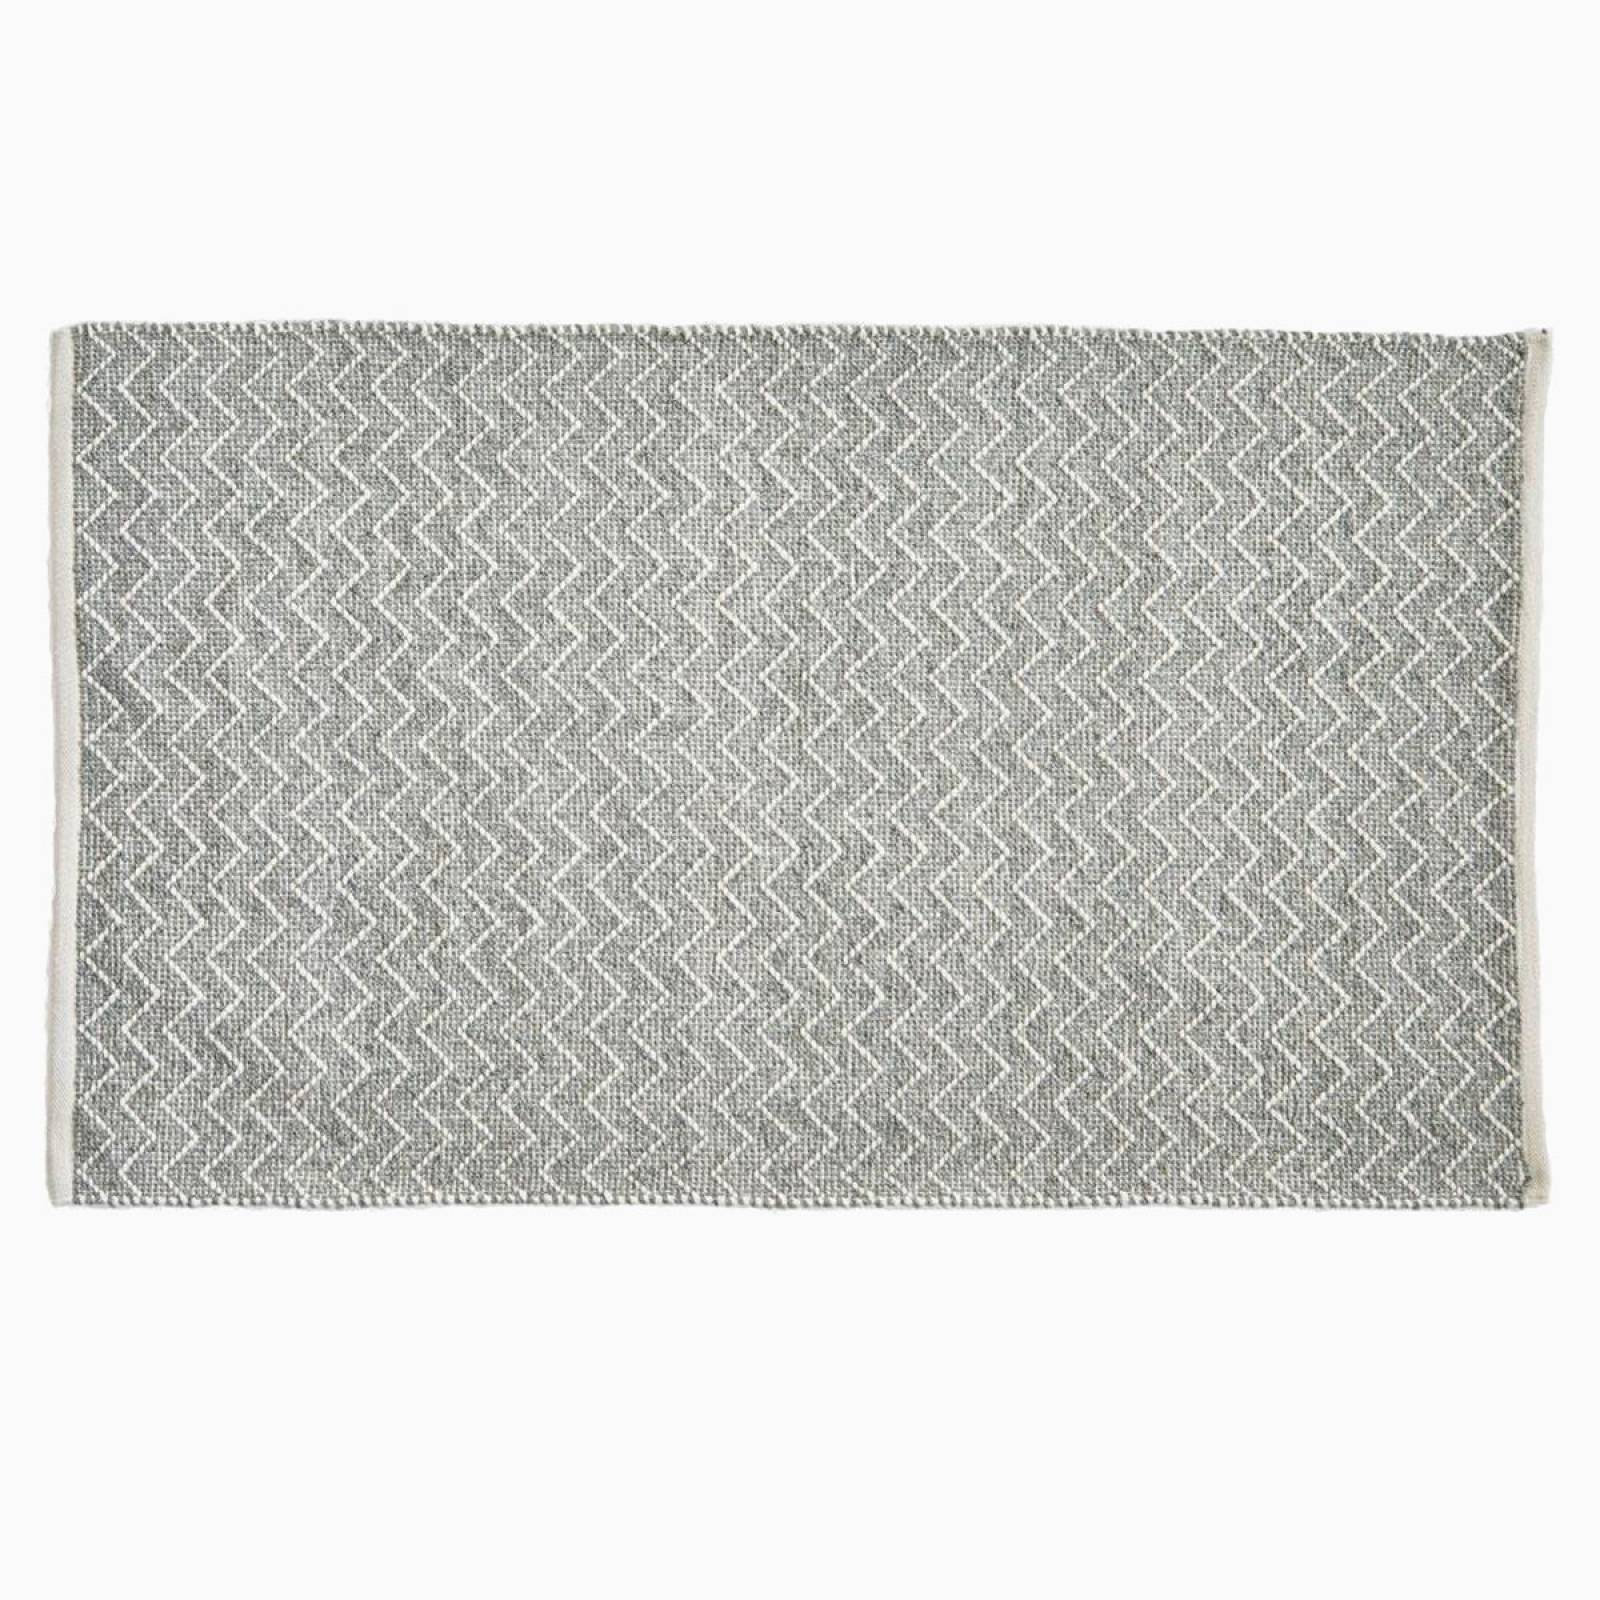 Chenille Dove Grey 150cm x 90cm Recycled Bottle Rug thumbnails